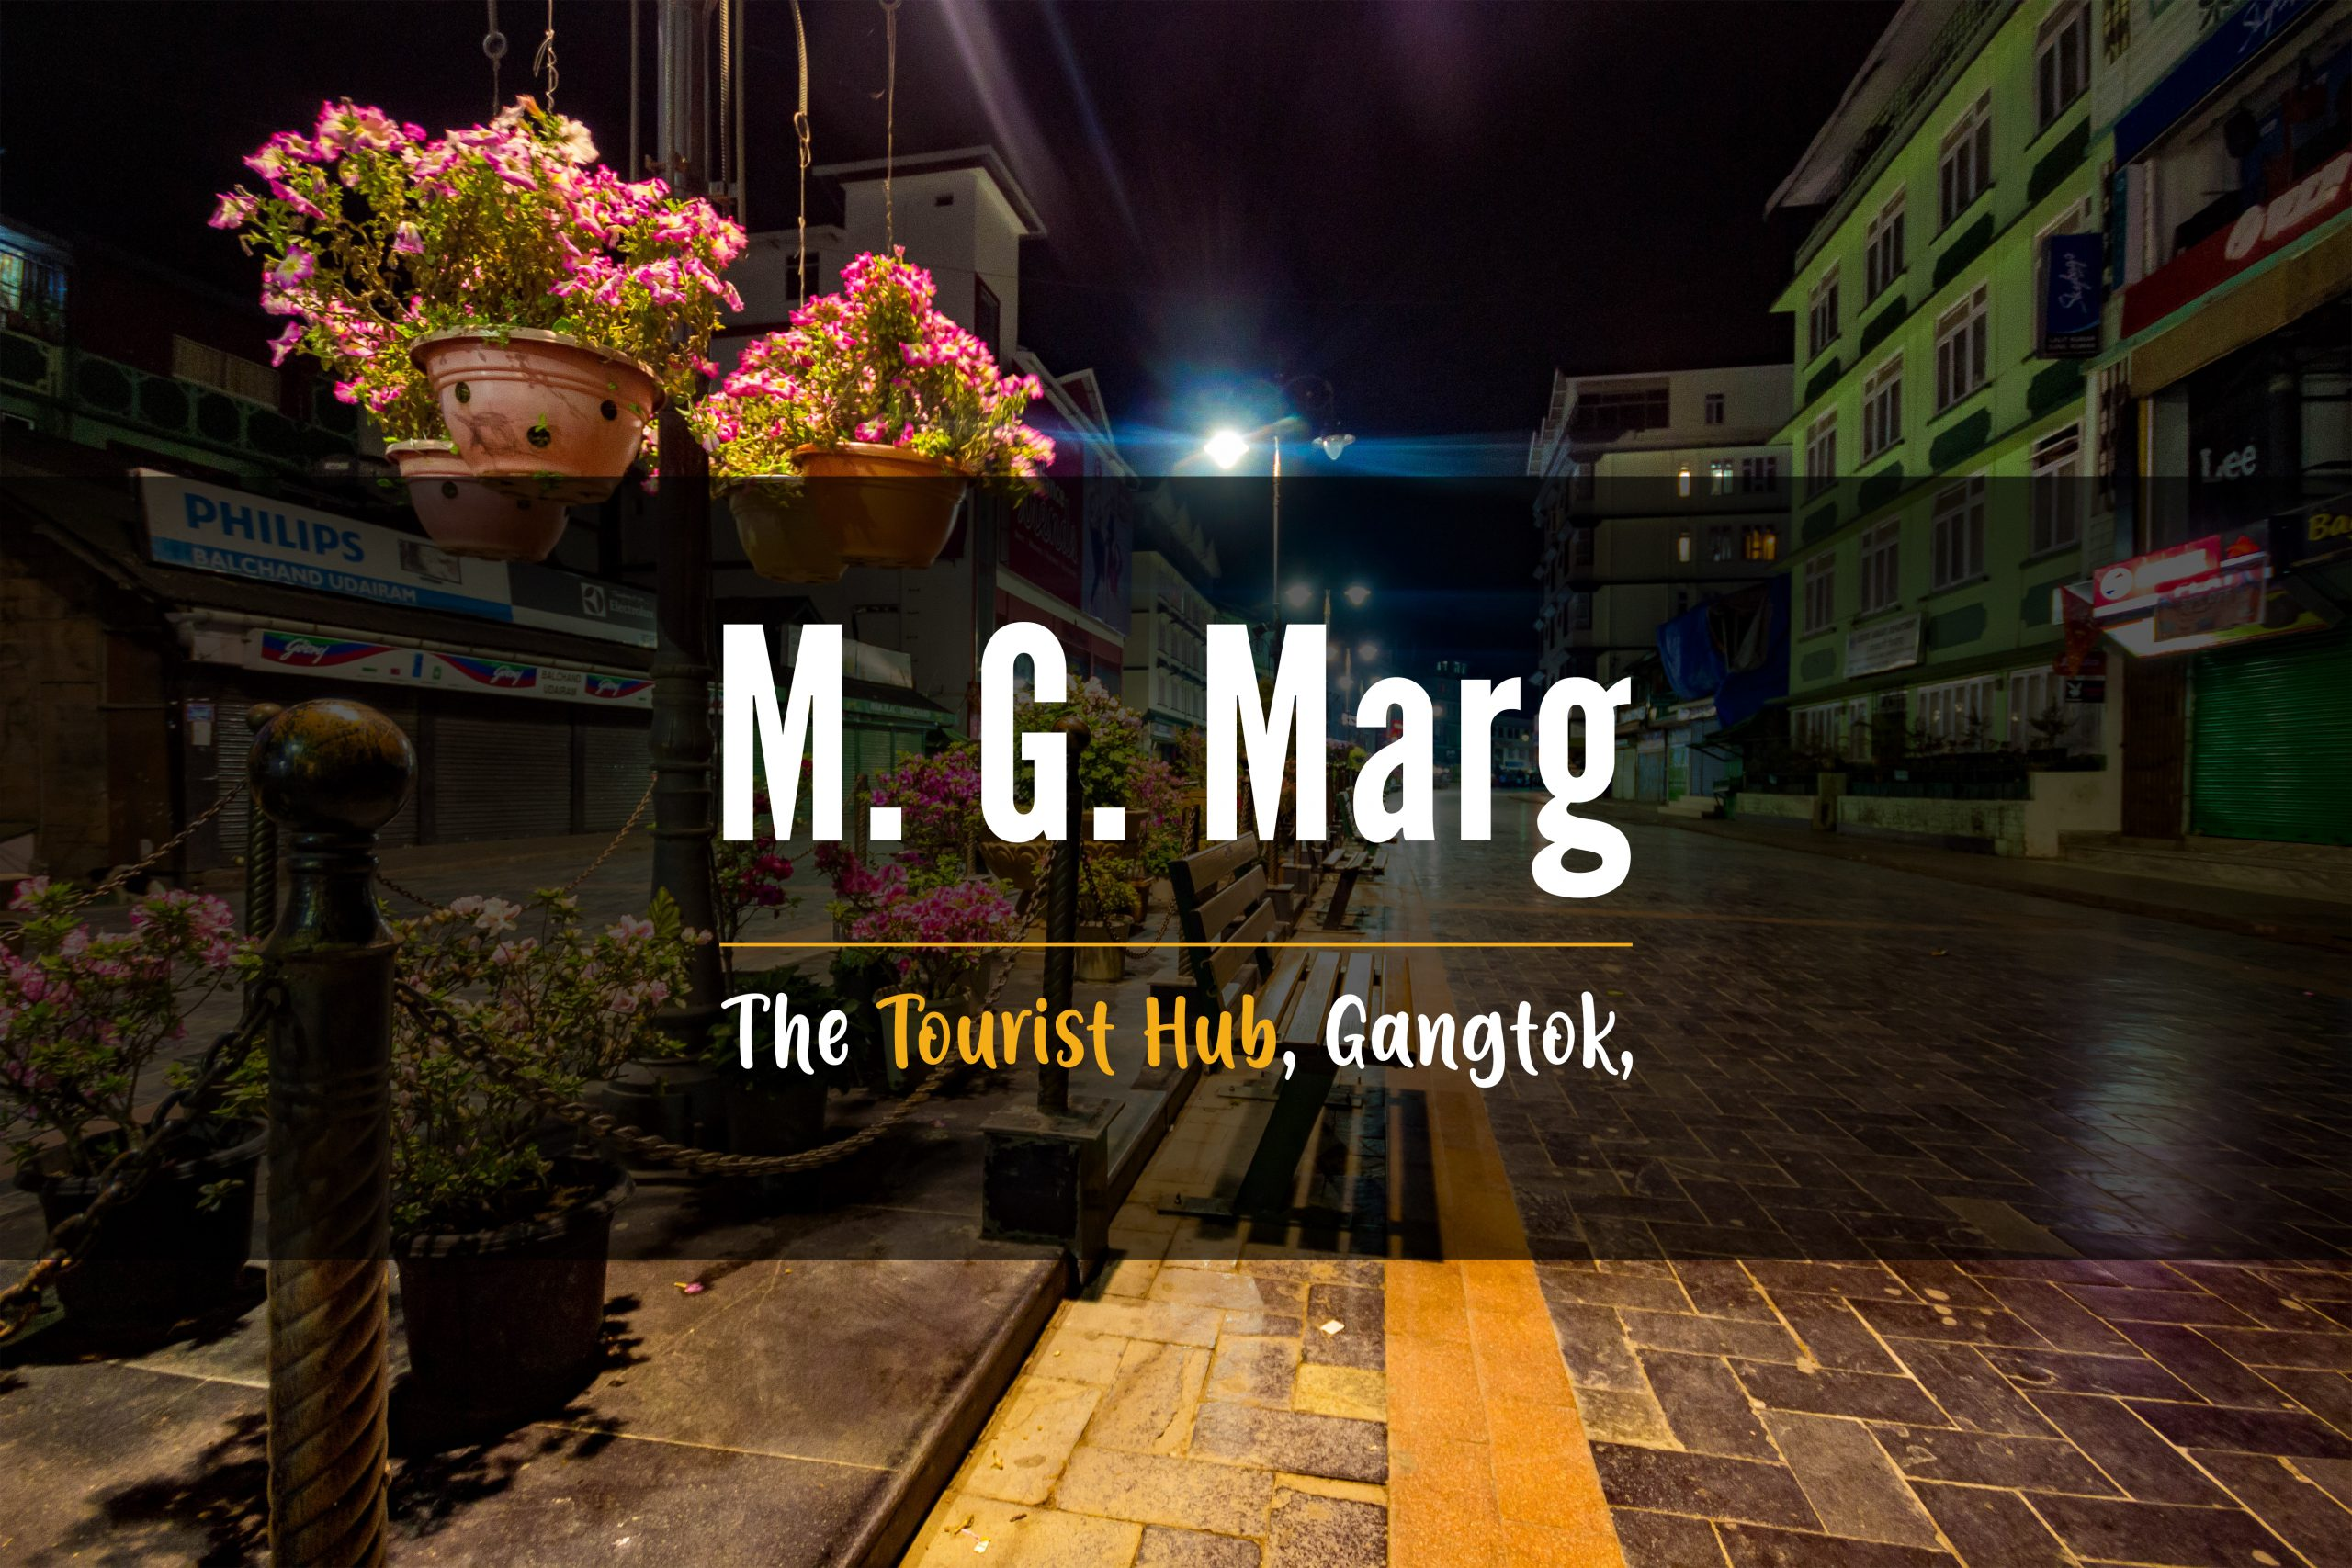 hotels near mg marg gangtok